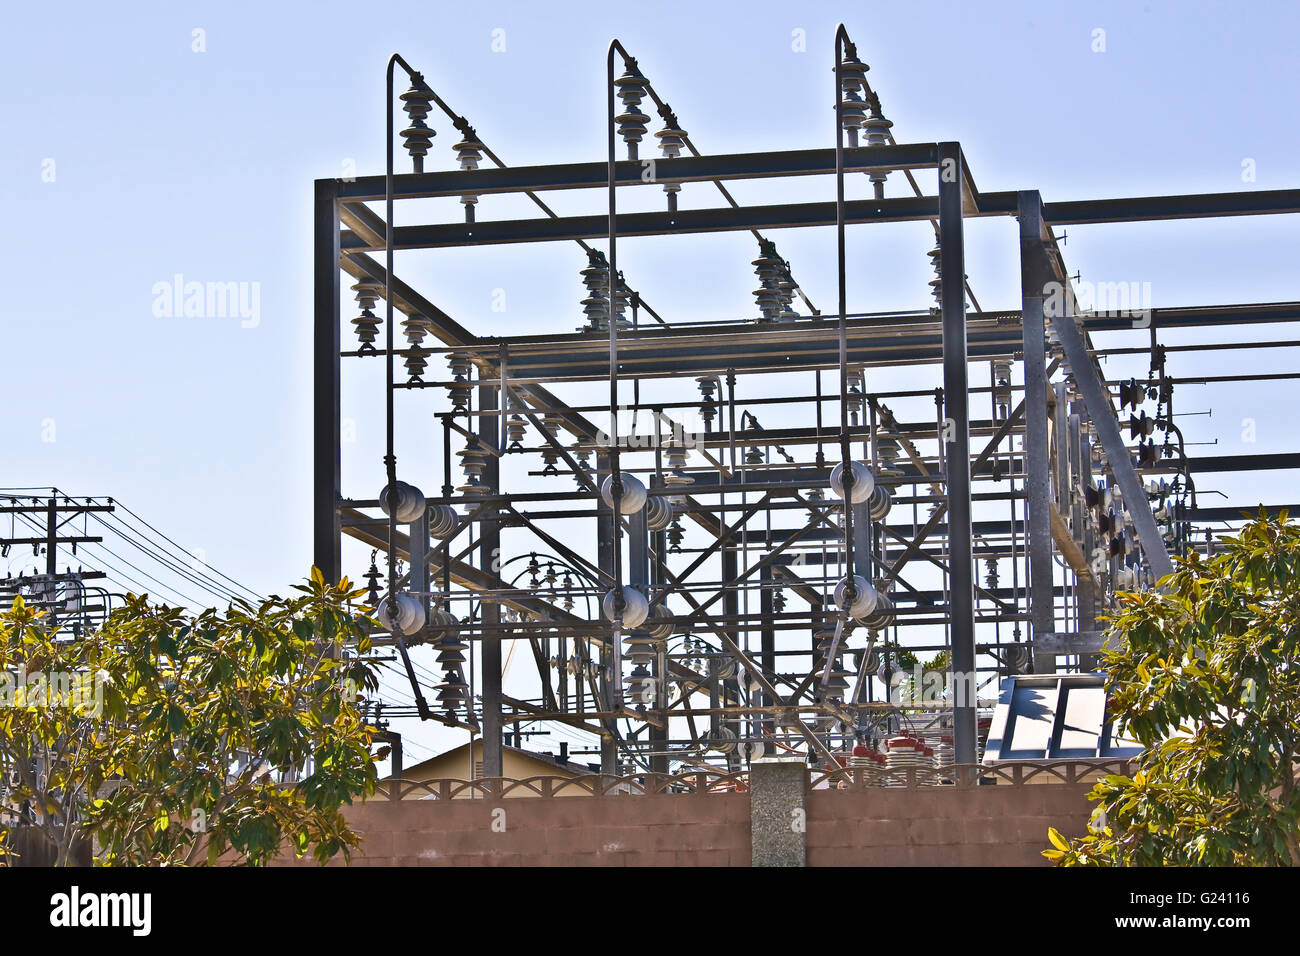 Electrical power high voltage distribution station - Stock Image